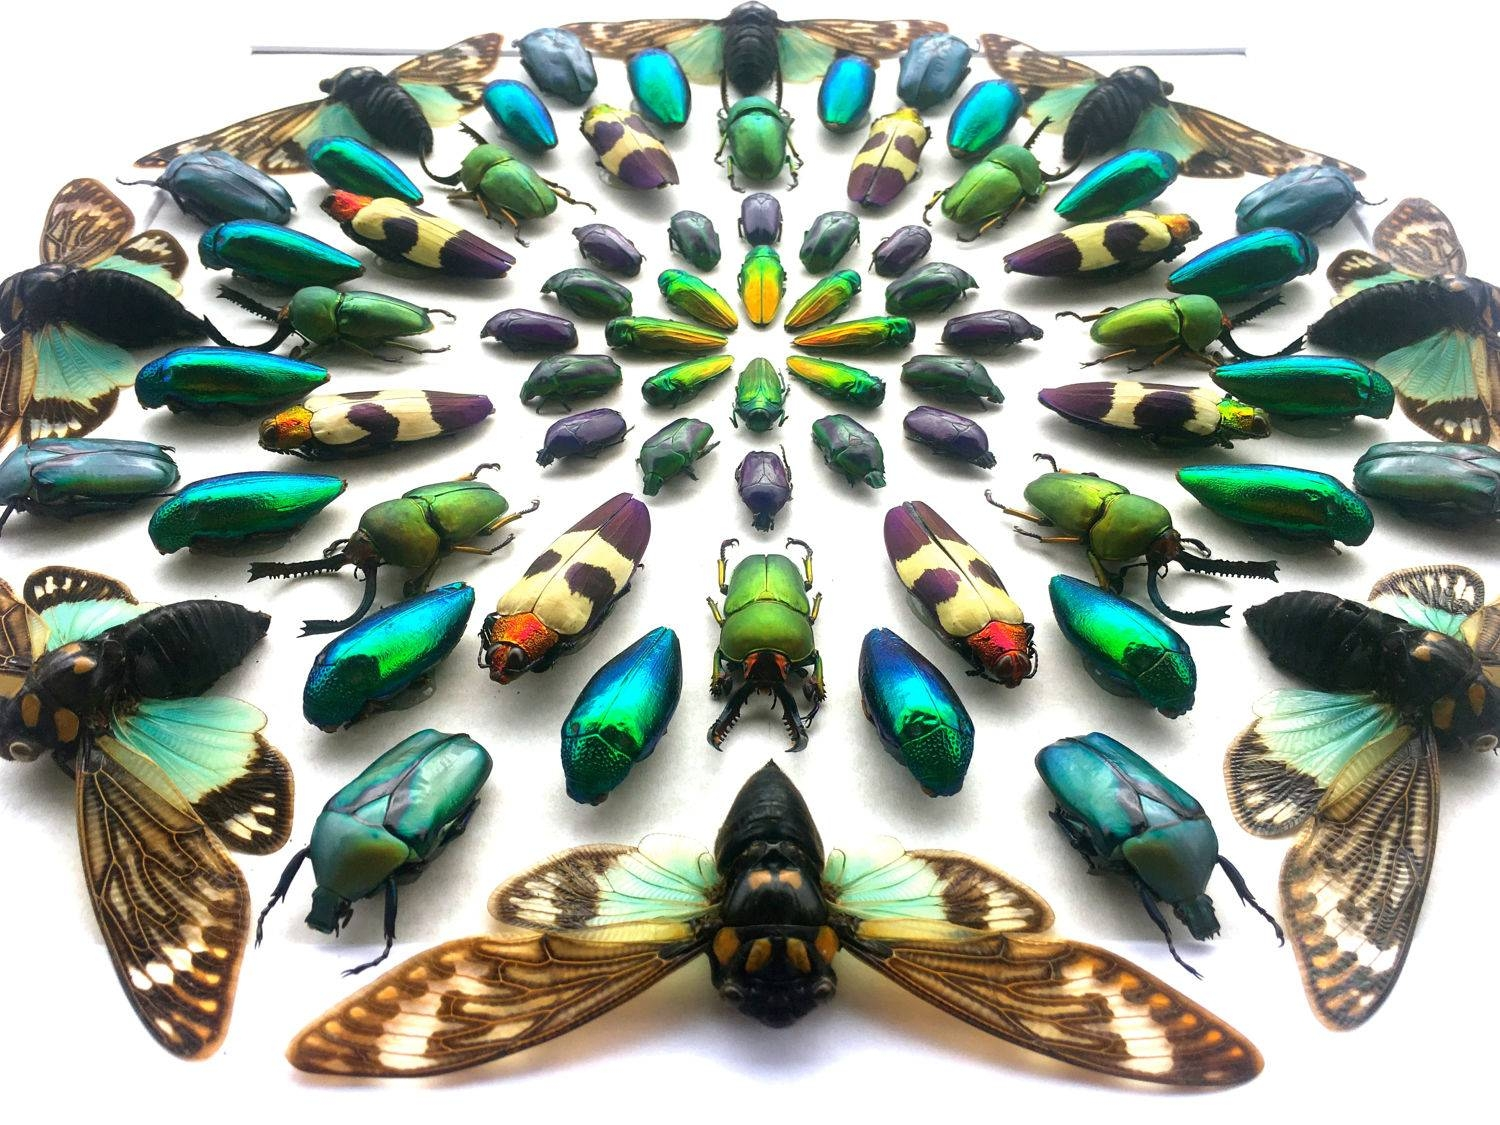 Framed Insect Display Kaleidoscope Real Bugs Framed Beetle Art With 2018 Kaleidoscope Wall Art (View 17 of 20)